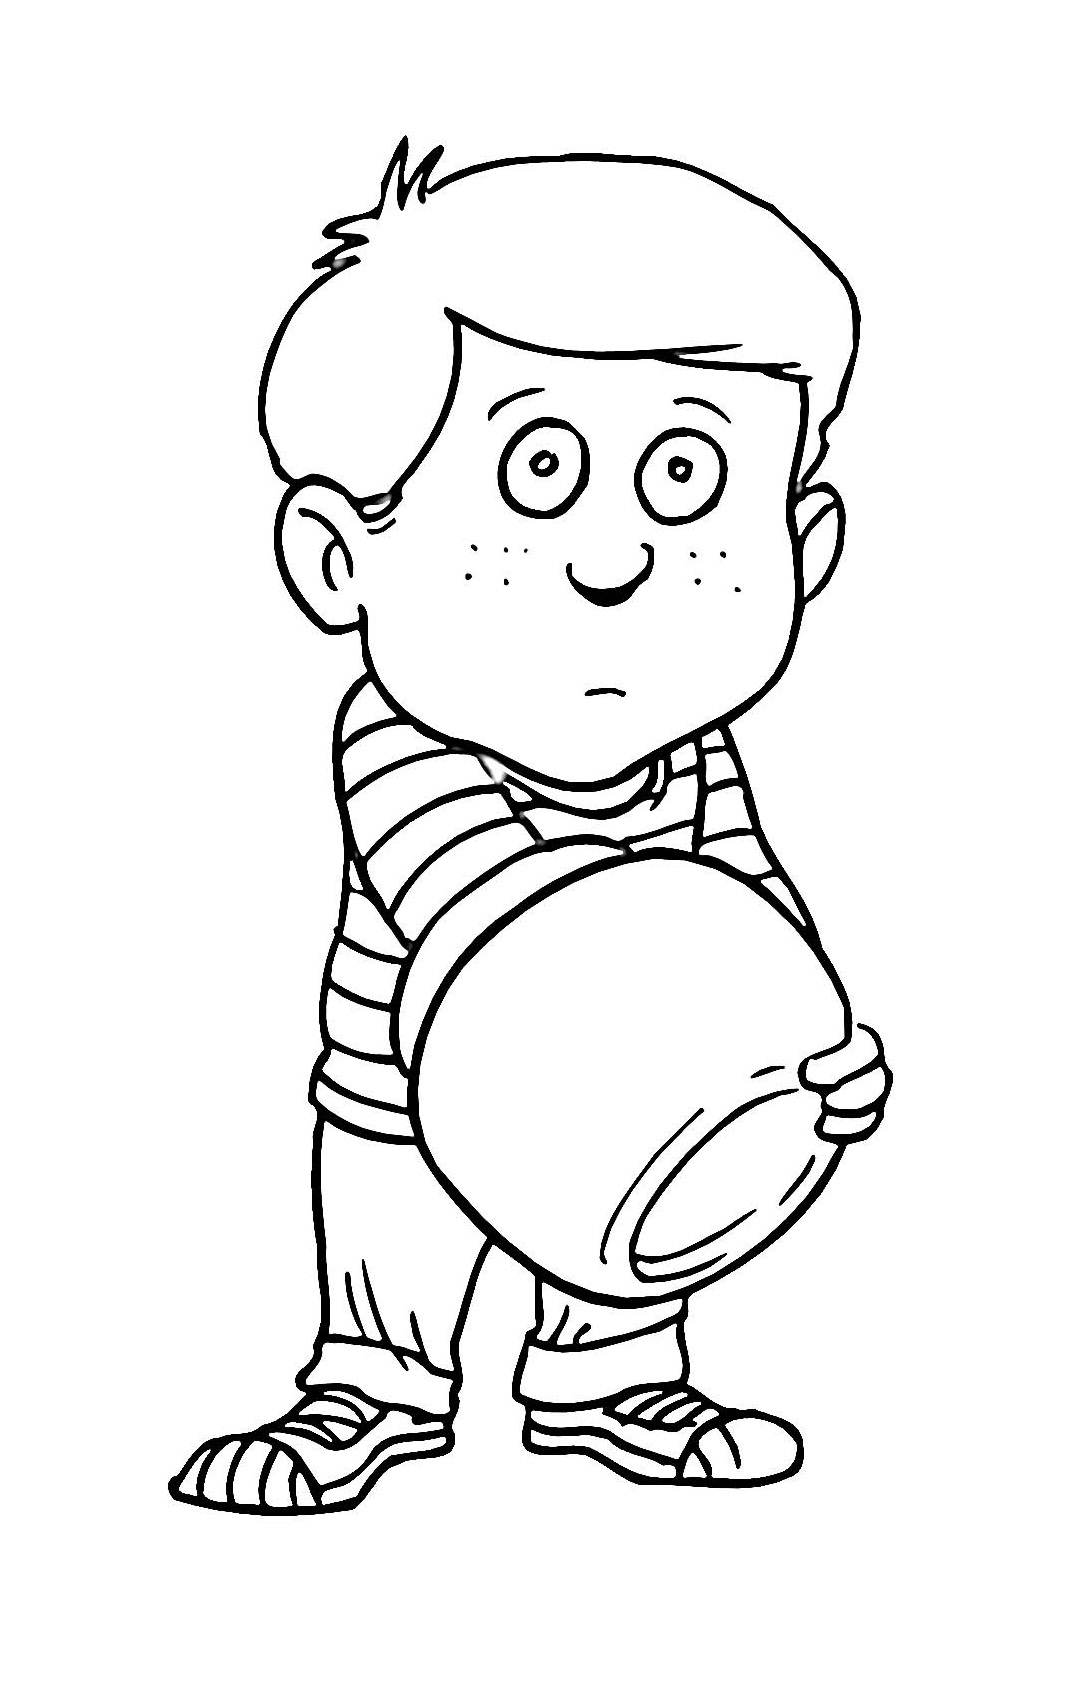 Free Printable Boy Coloring Pages For Kids | colouring pages for toddlers